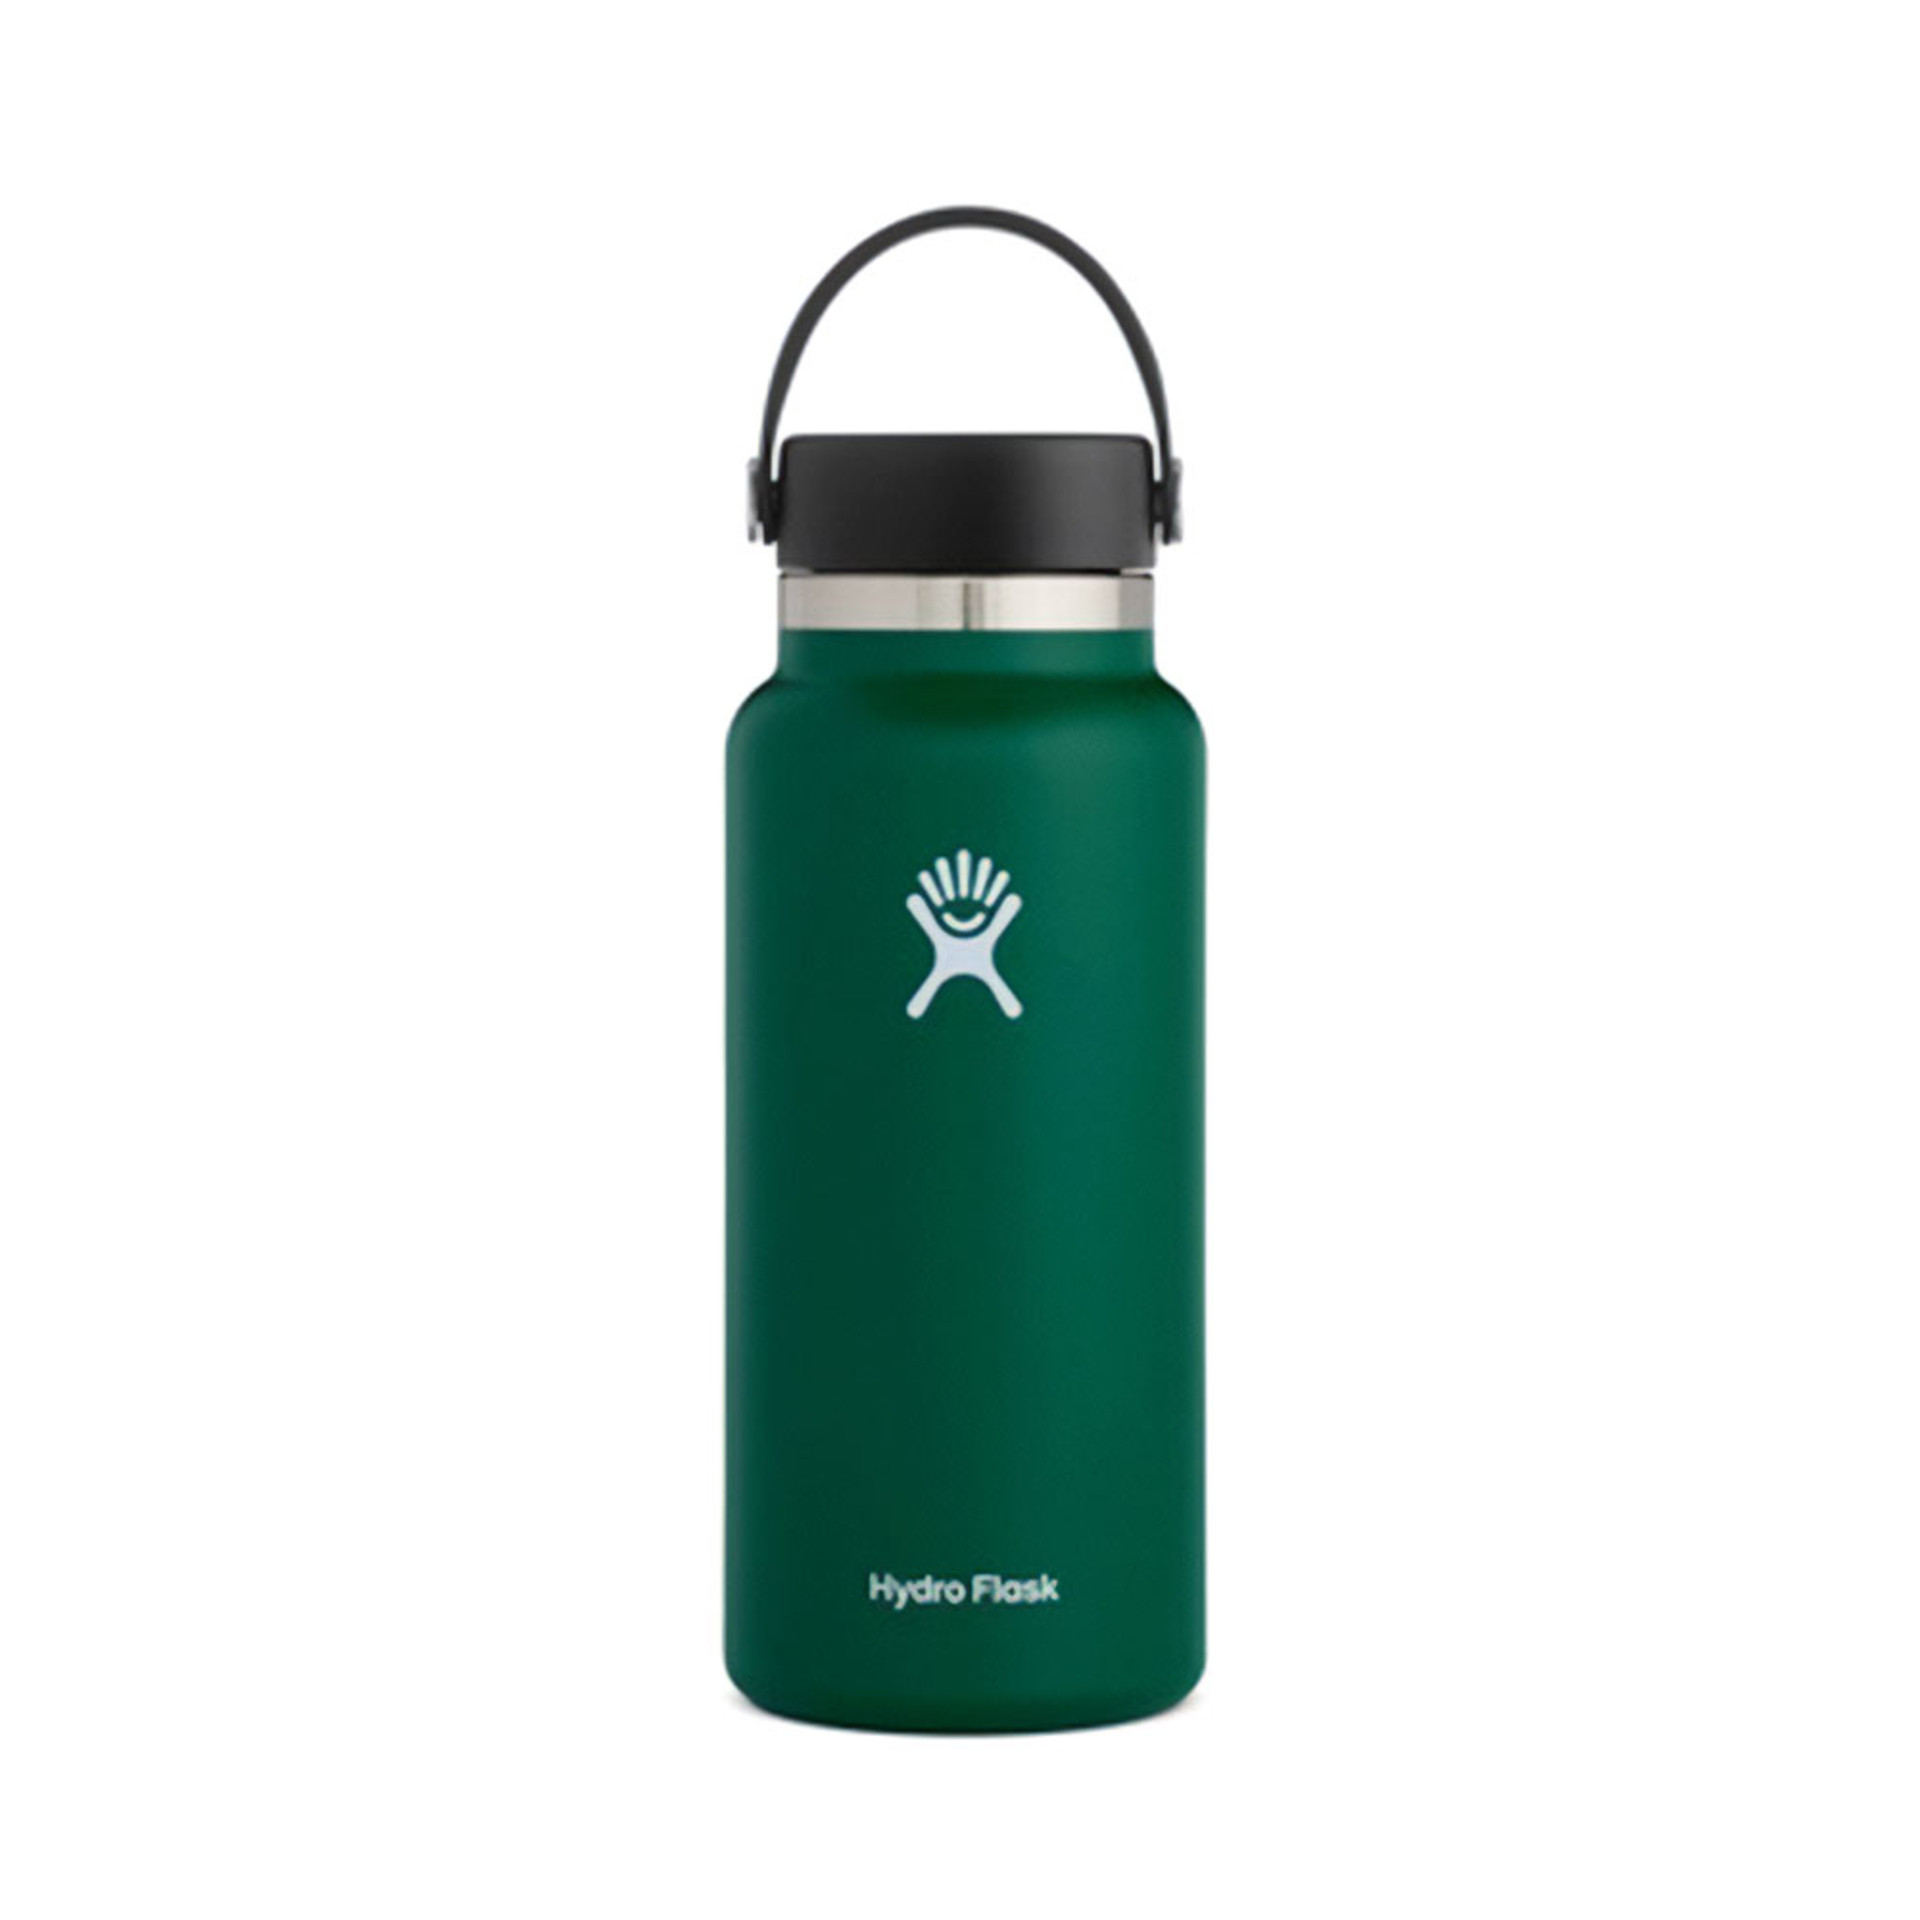 Hydro Flask Water Bottle 32oz Wide Mouth – Sage